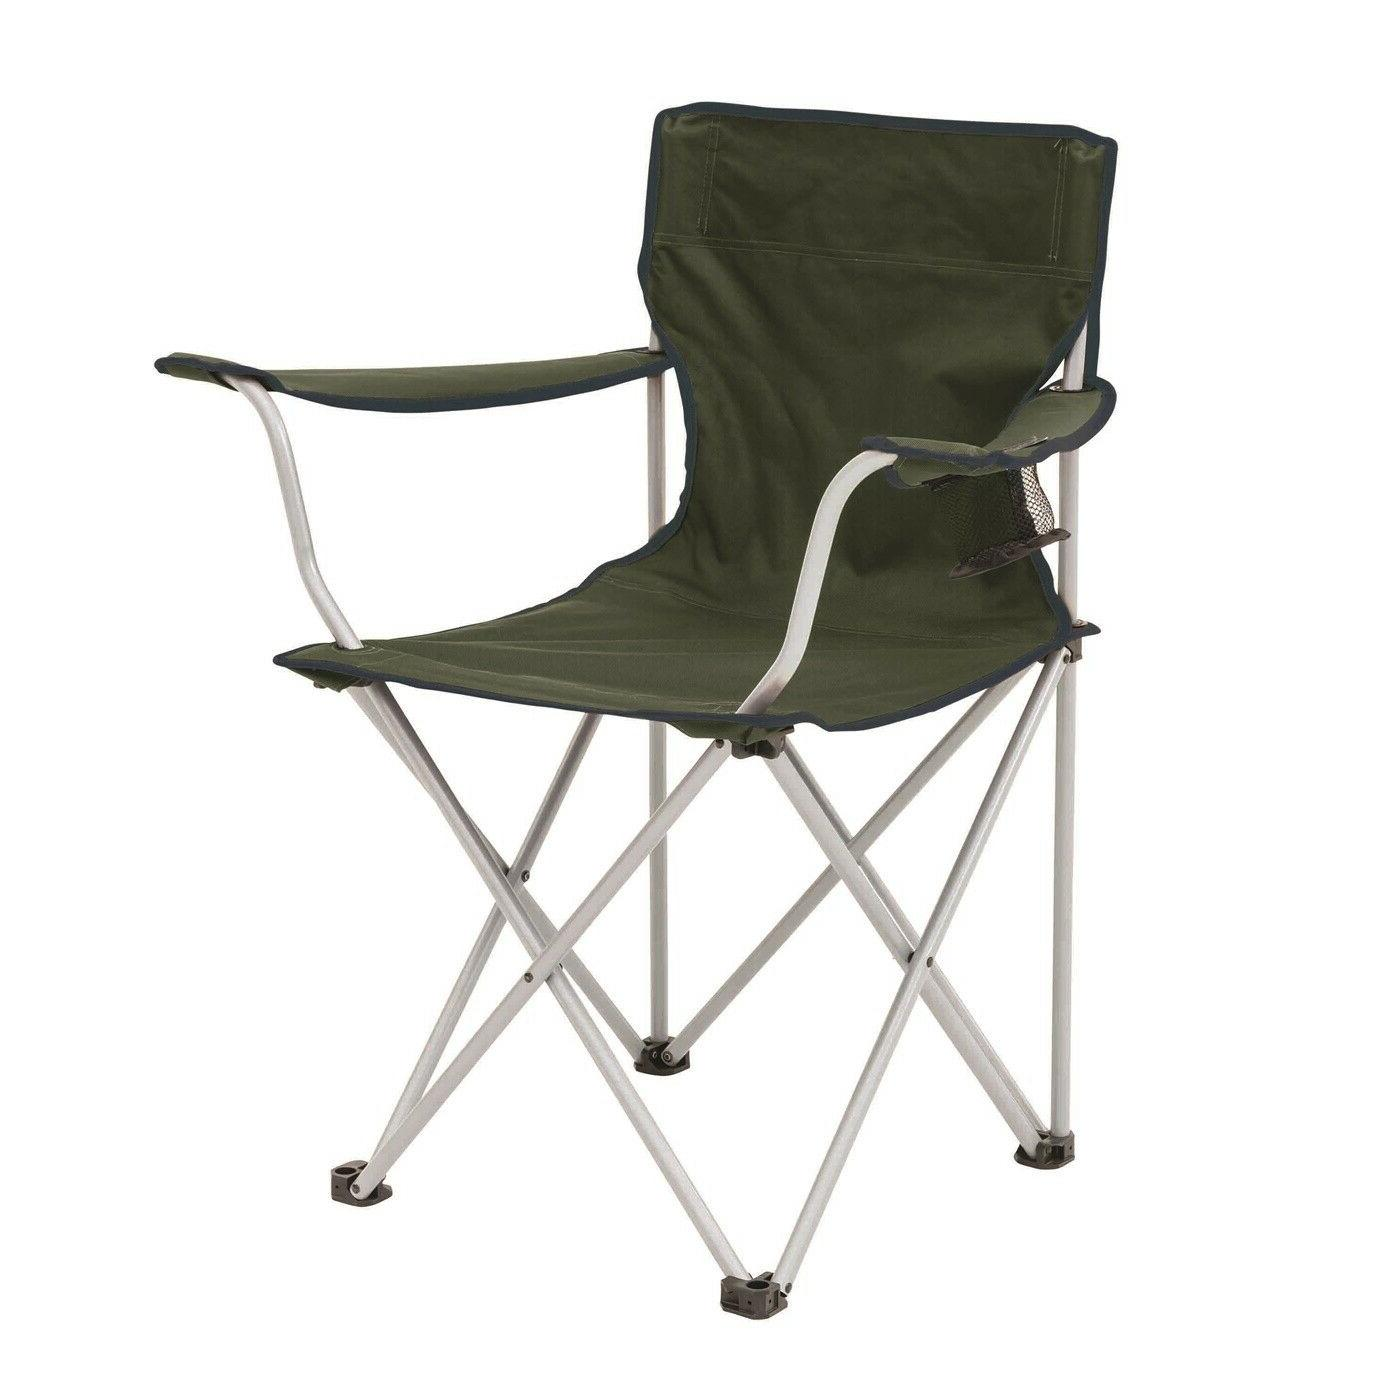 6 Combo Bags Chairs Portable Travel Table